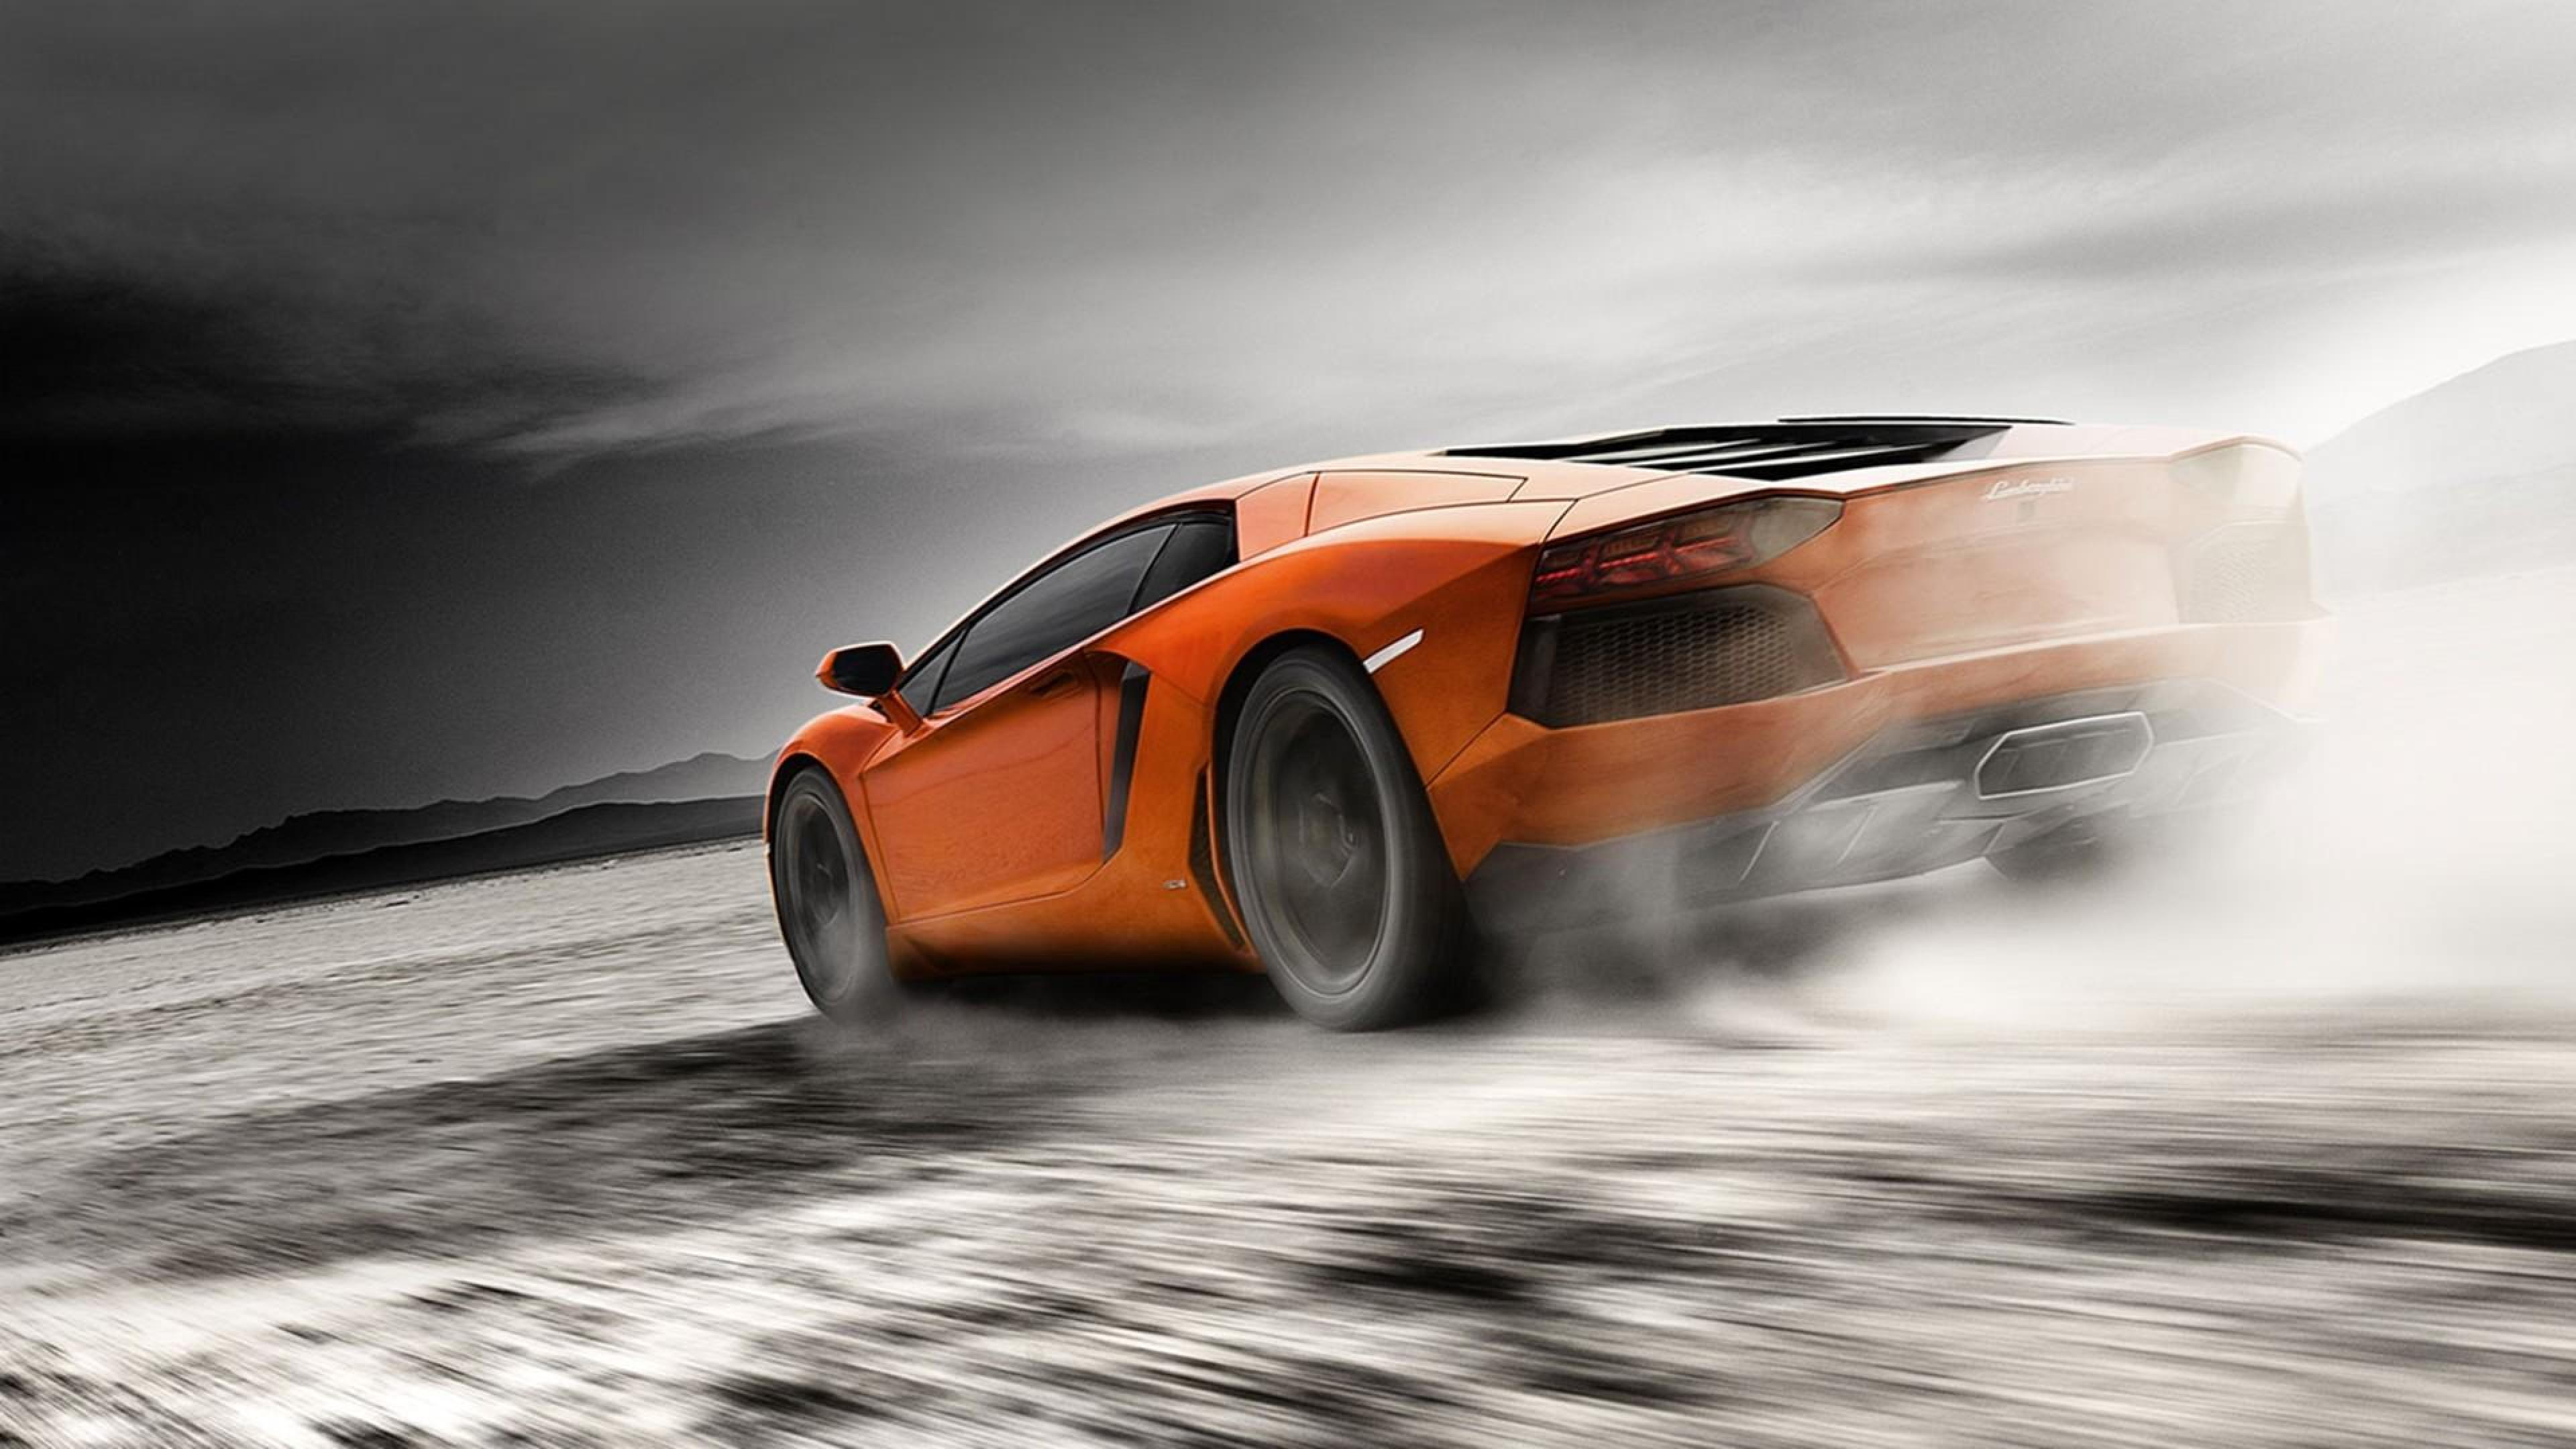 Orange Lamborghini Aventador, HD Cars, 4k Wallpapers ...